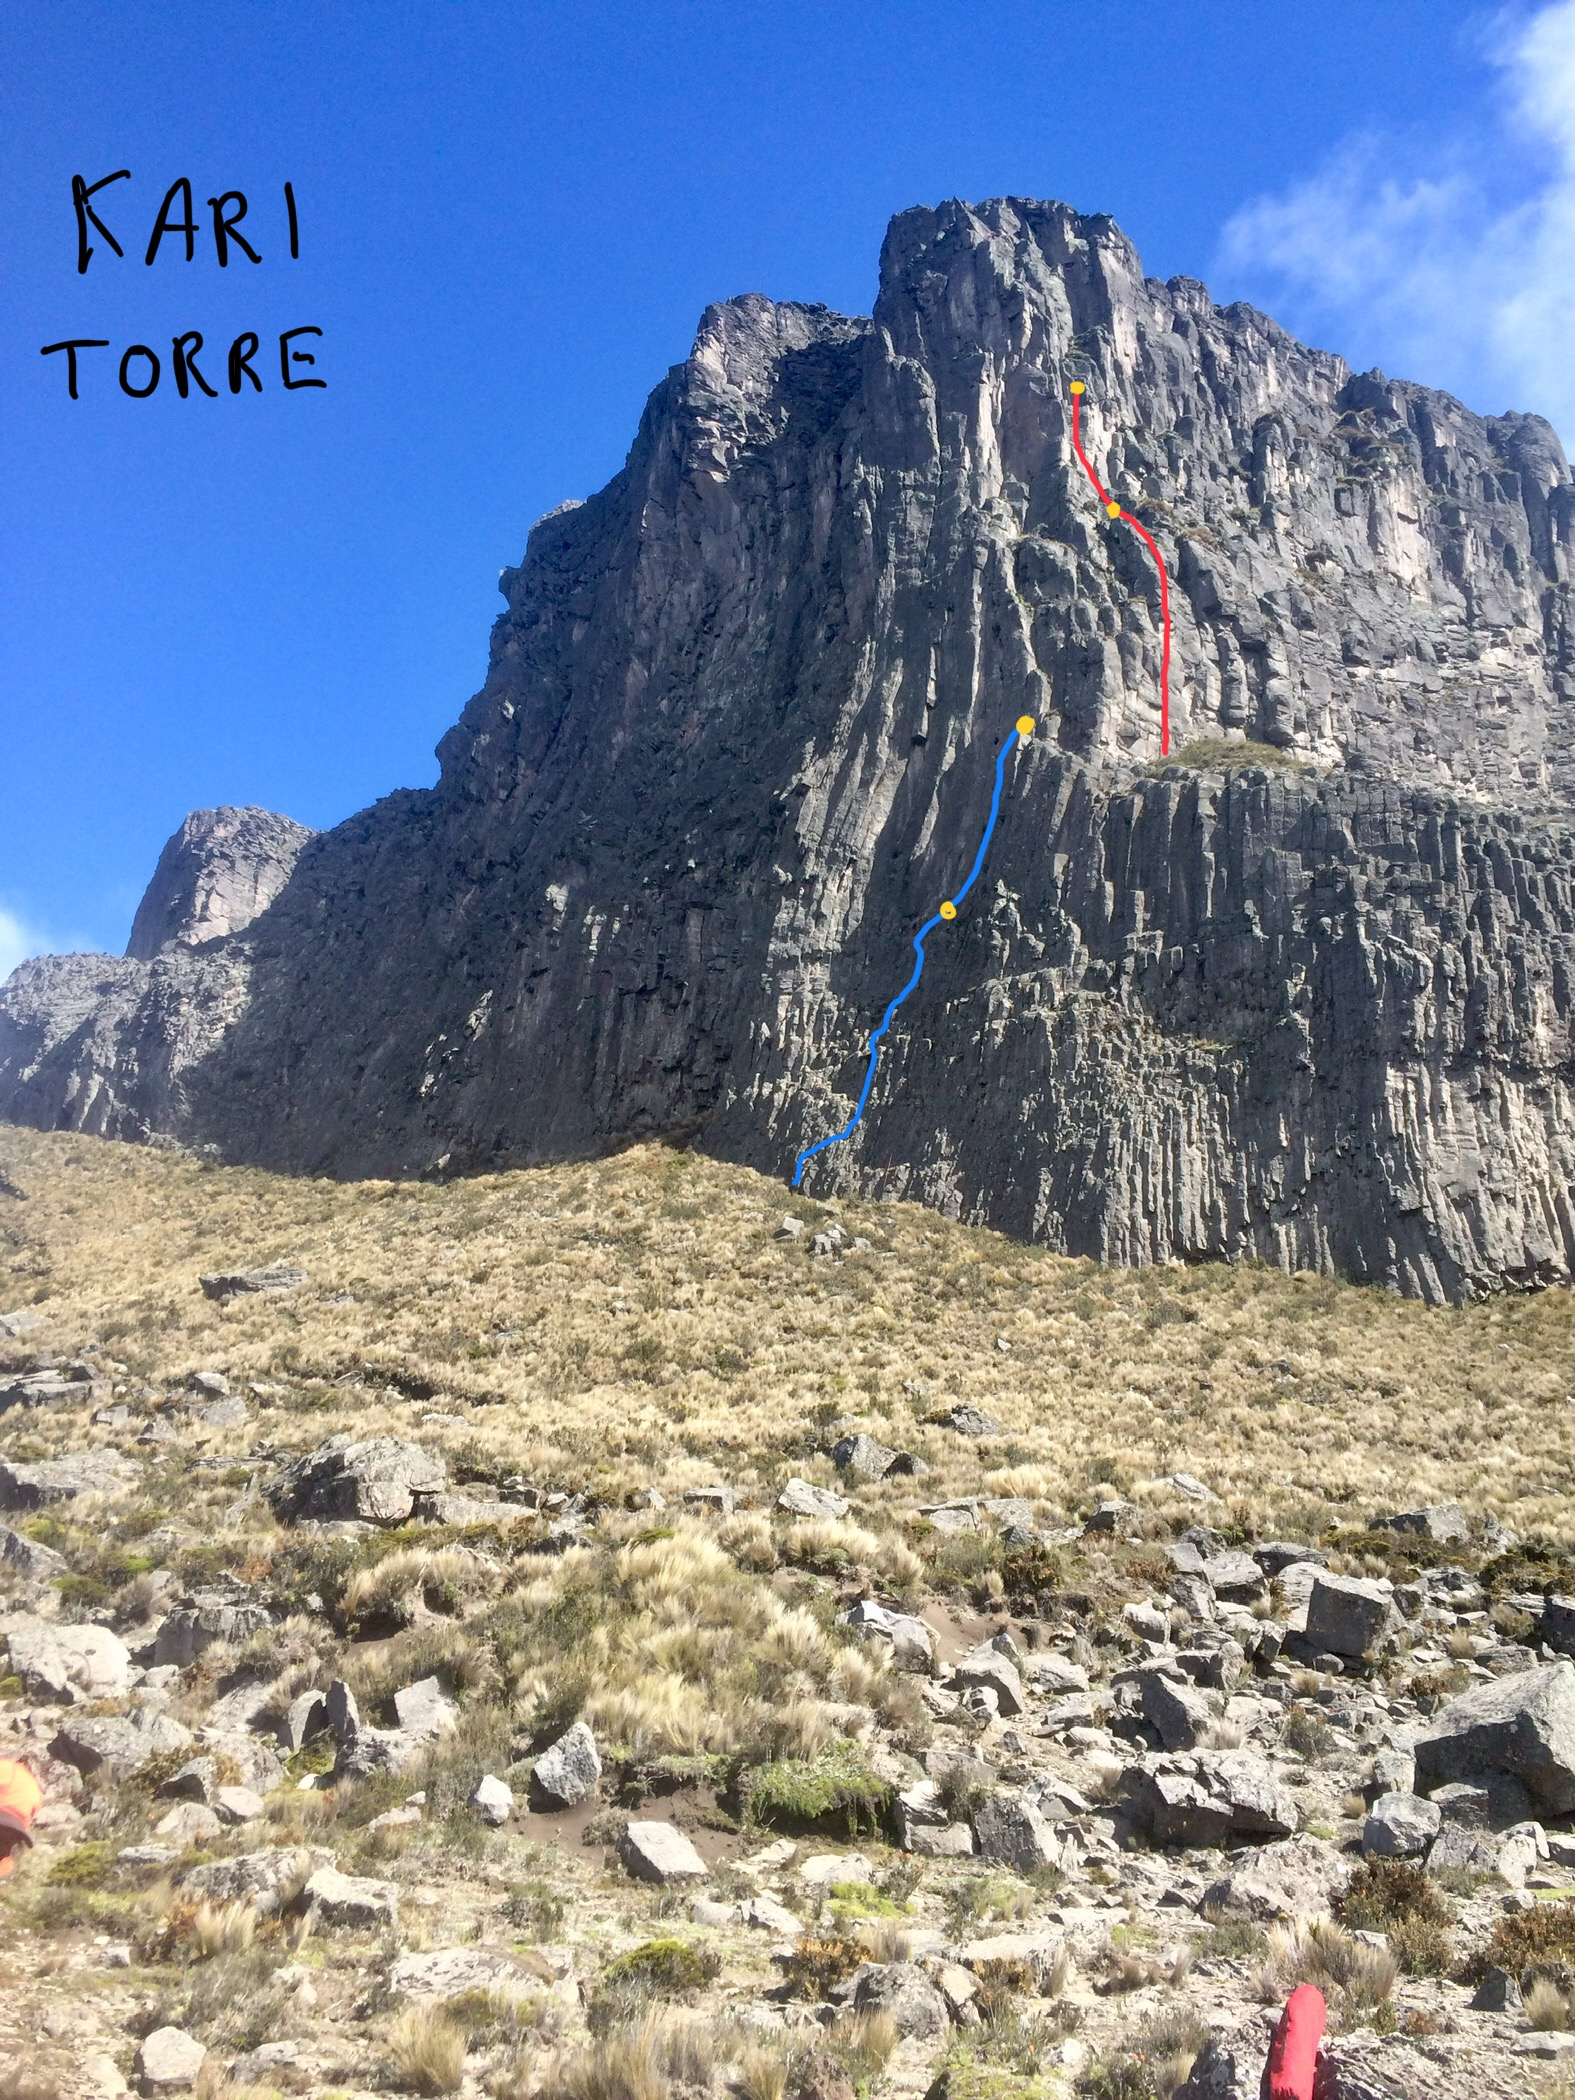 Kari Torre, showing the one partially established route (as of January 2019): 5.11 A2 (blue) and 5.10 A1 (red).